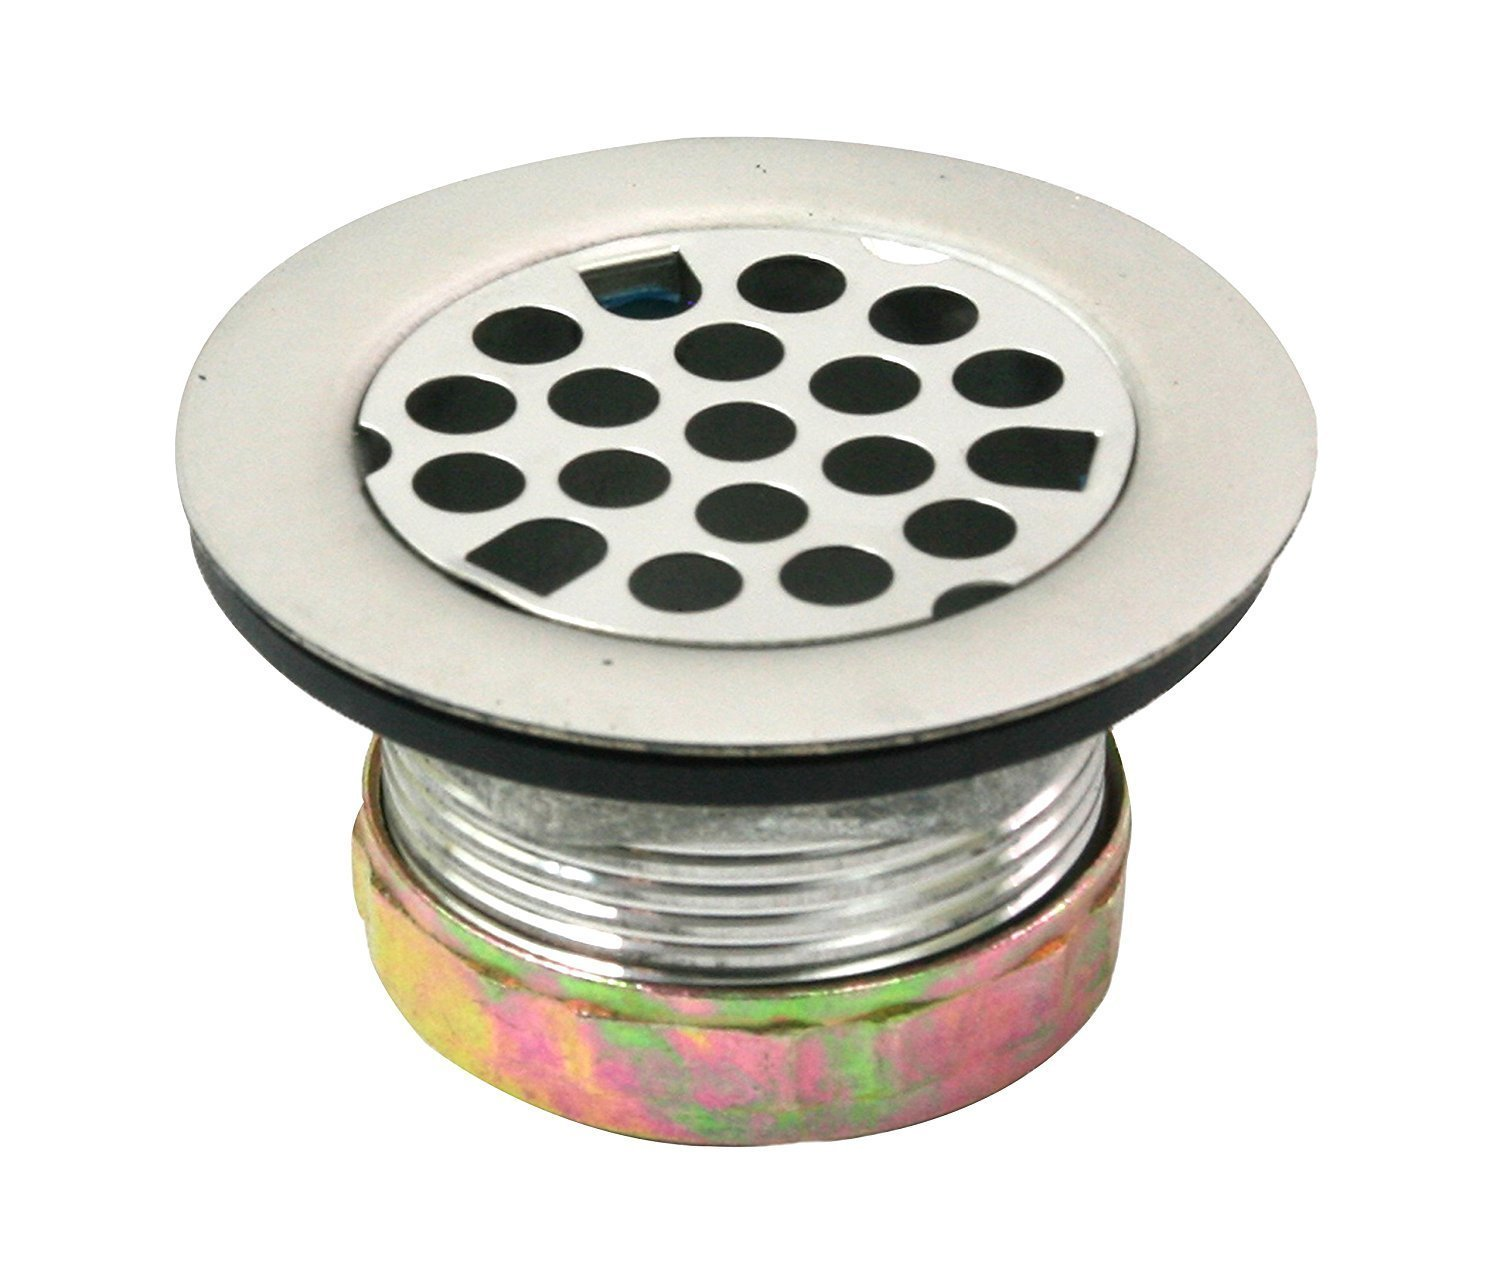 Everflow 7571 Flat Stainless SteelRV Mobile Shower Strainer - Drain Assembly for Bar or Bathroom Sinks